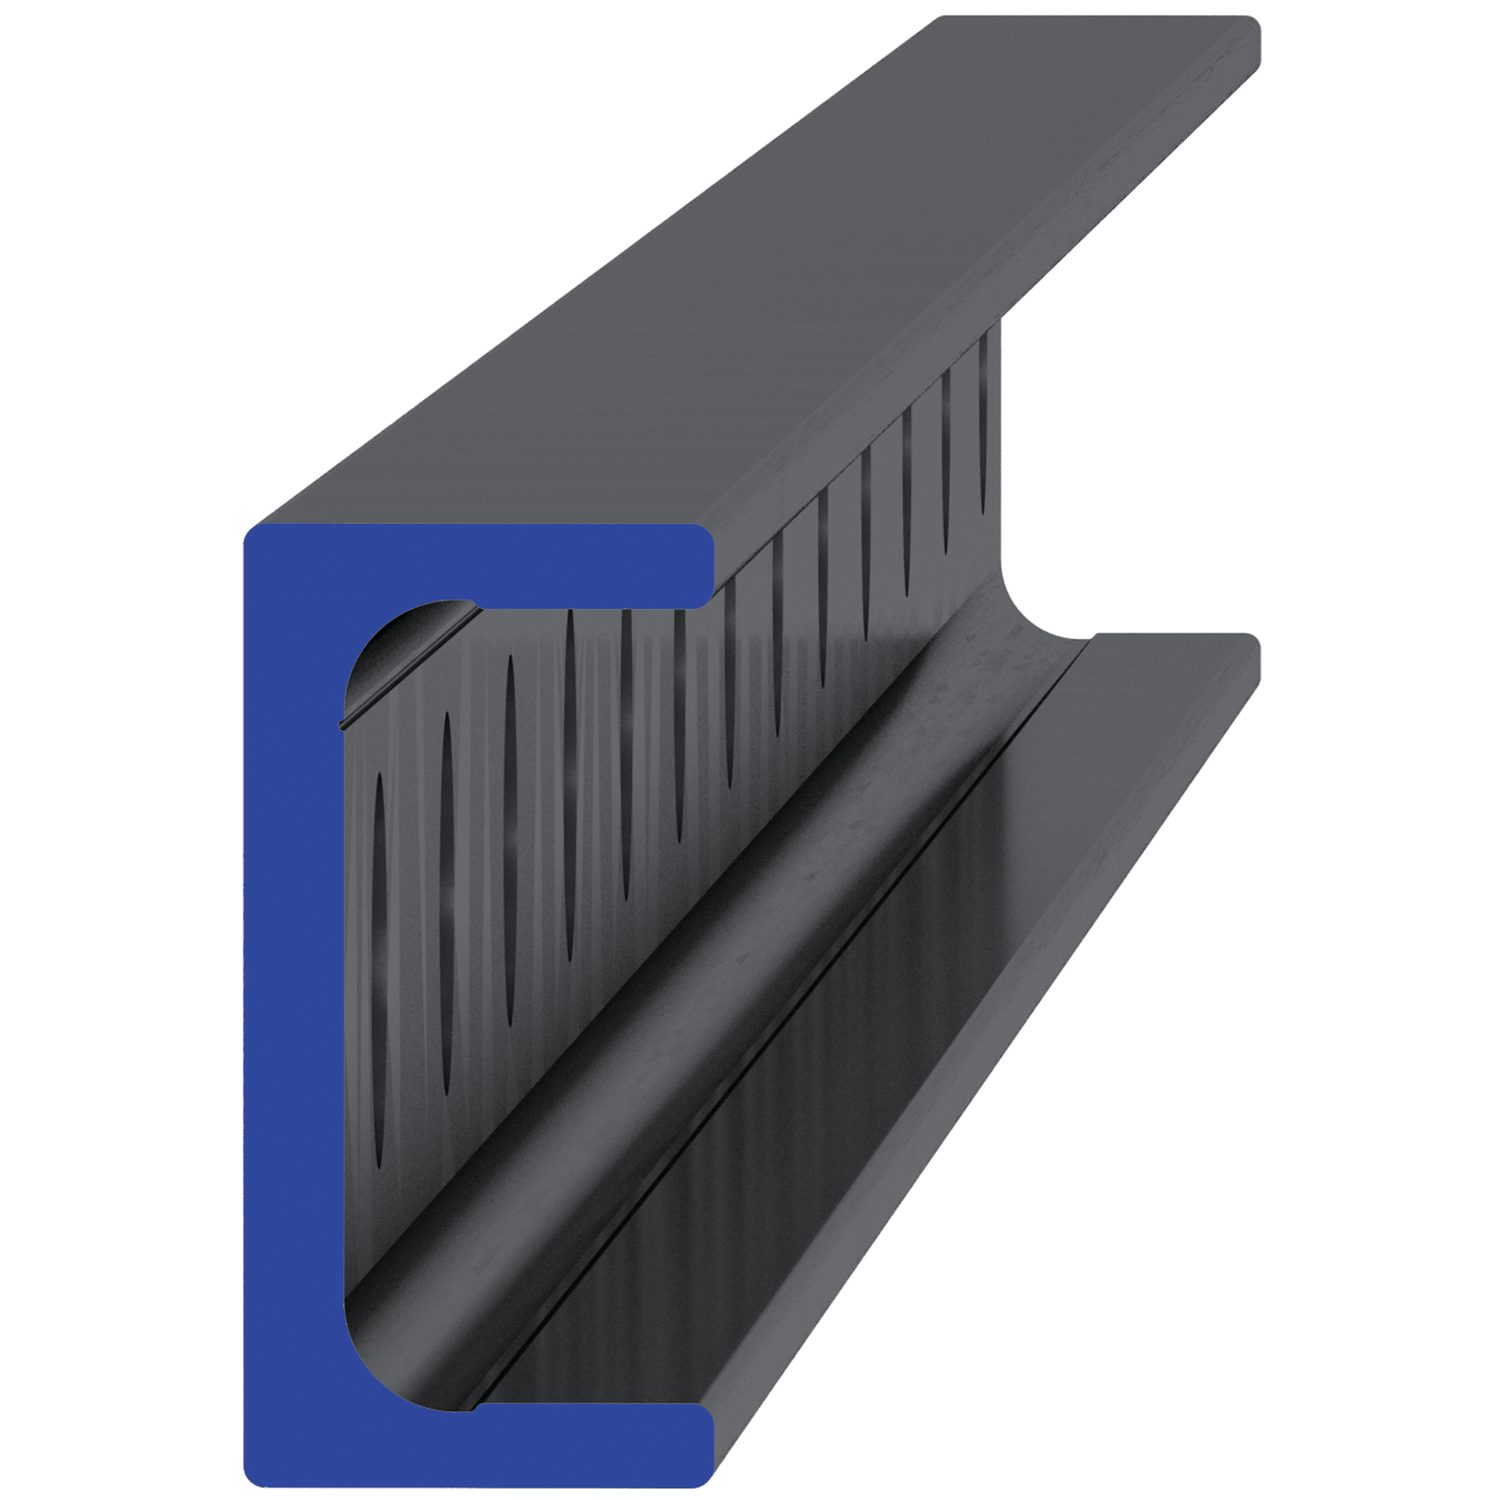 Product L1928.UL, Medium Duty U Rail counterbored holes /